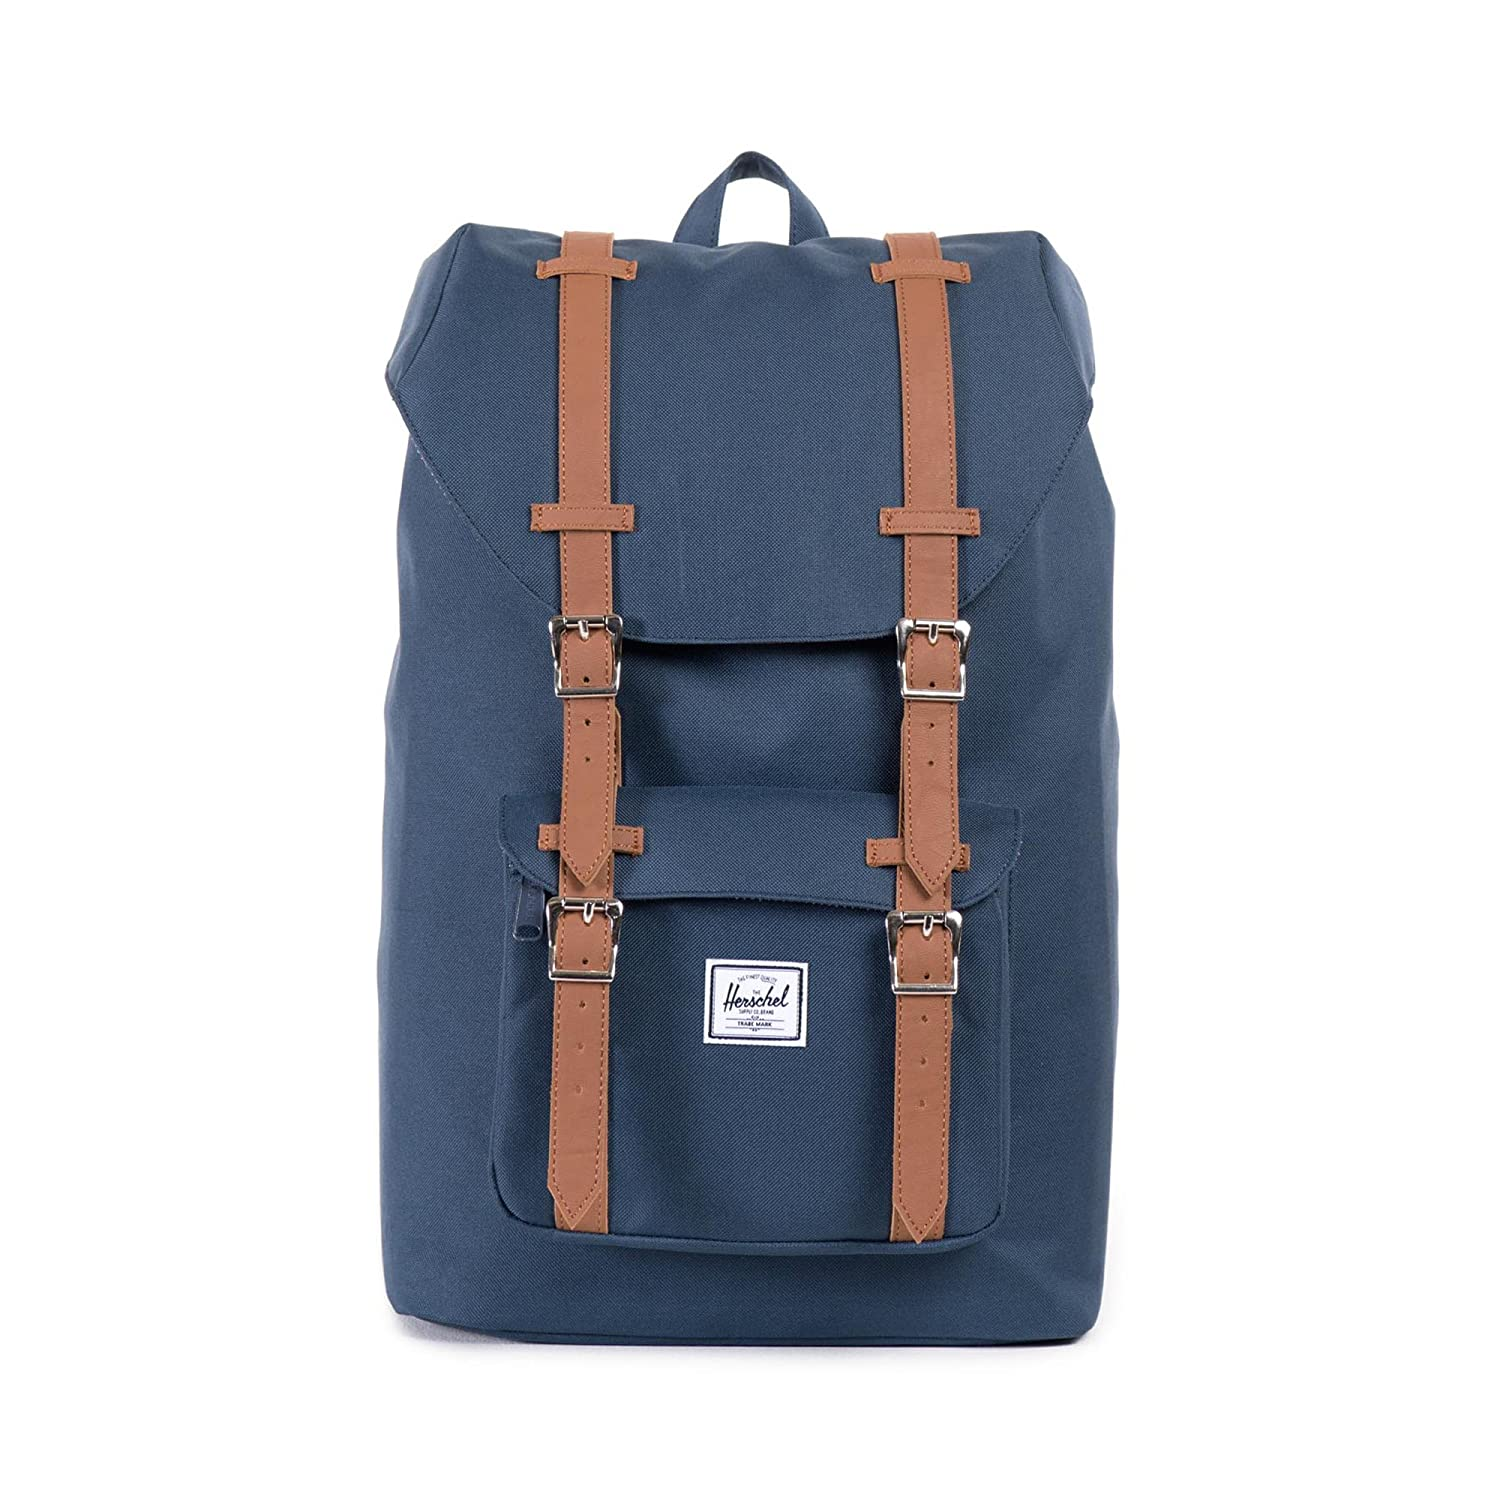 Sac à dos Herschel Little America Navy/Captain's Blue/Navy Rubber bleu mHjie3ls